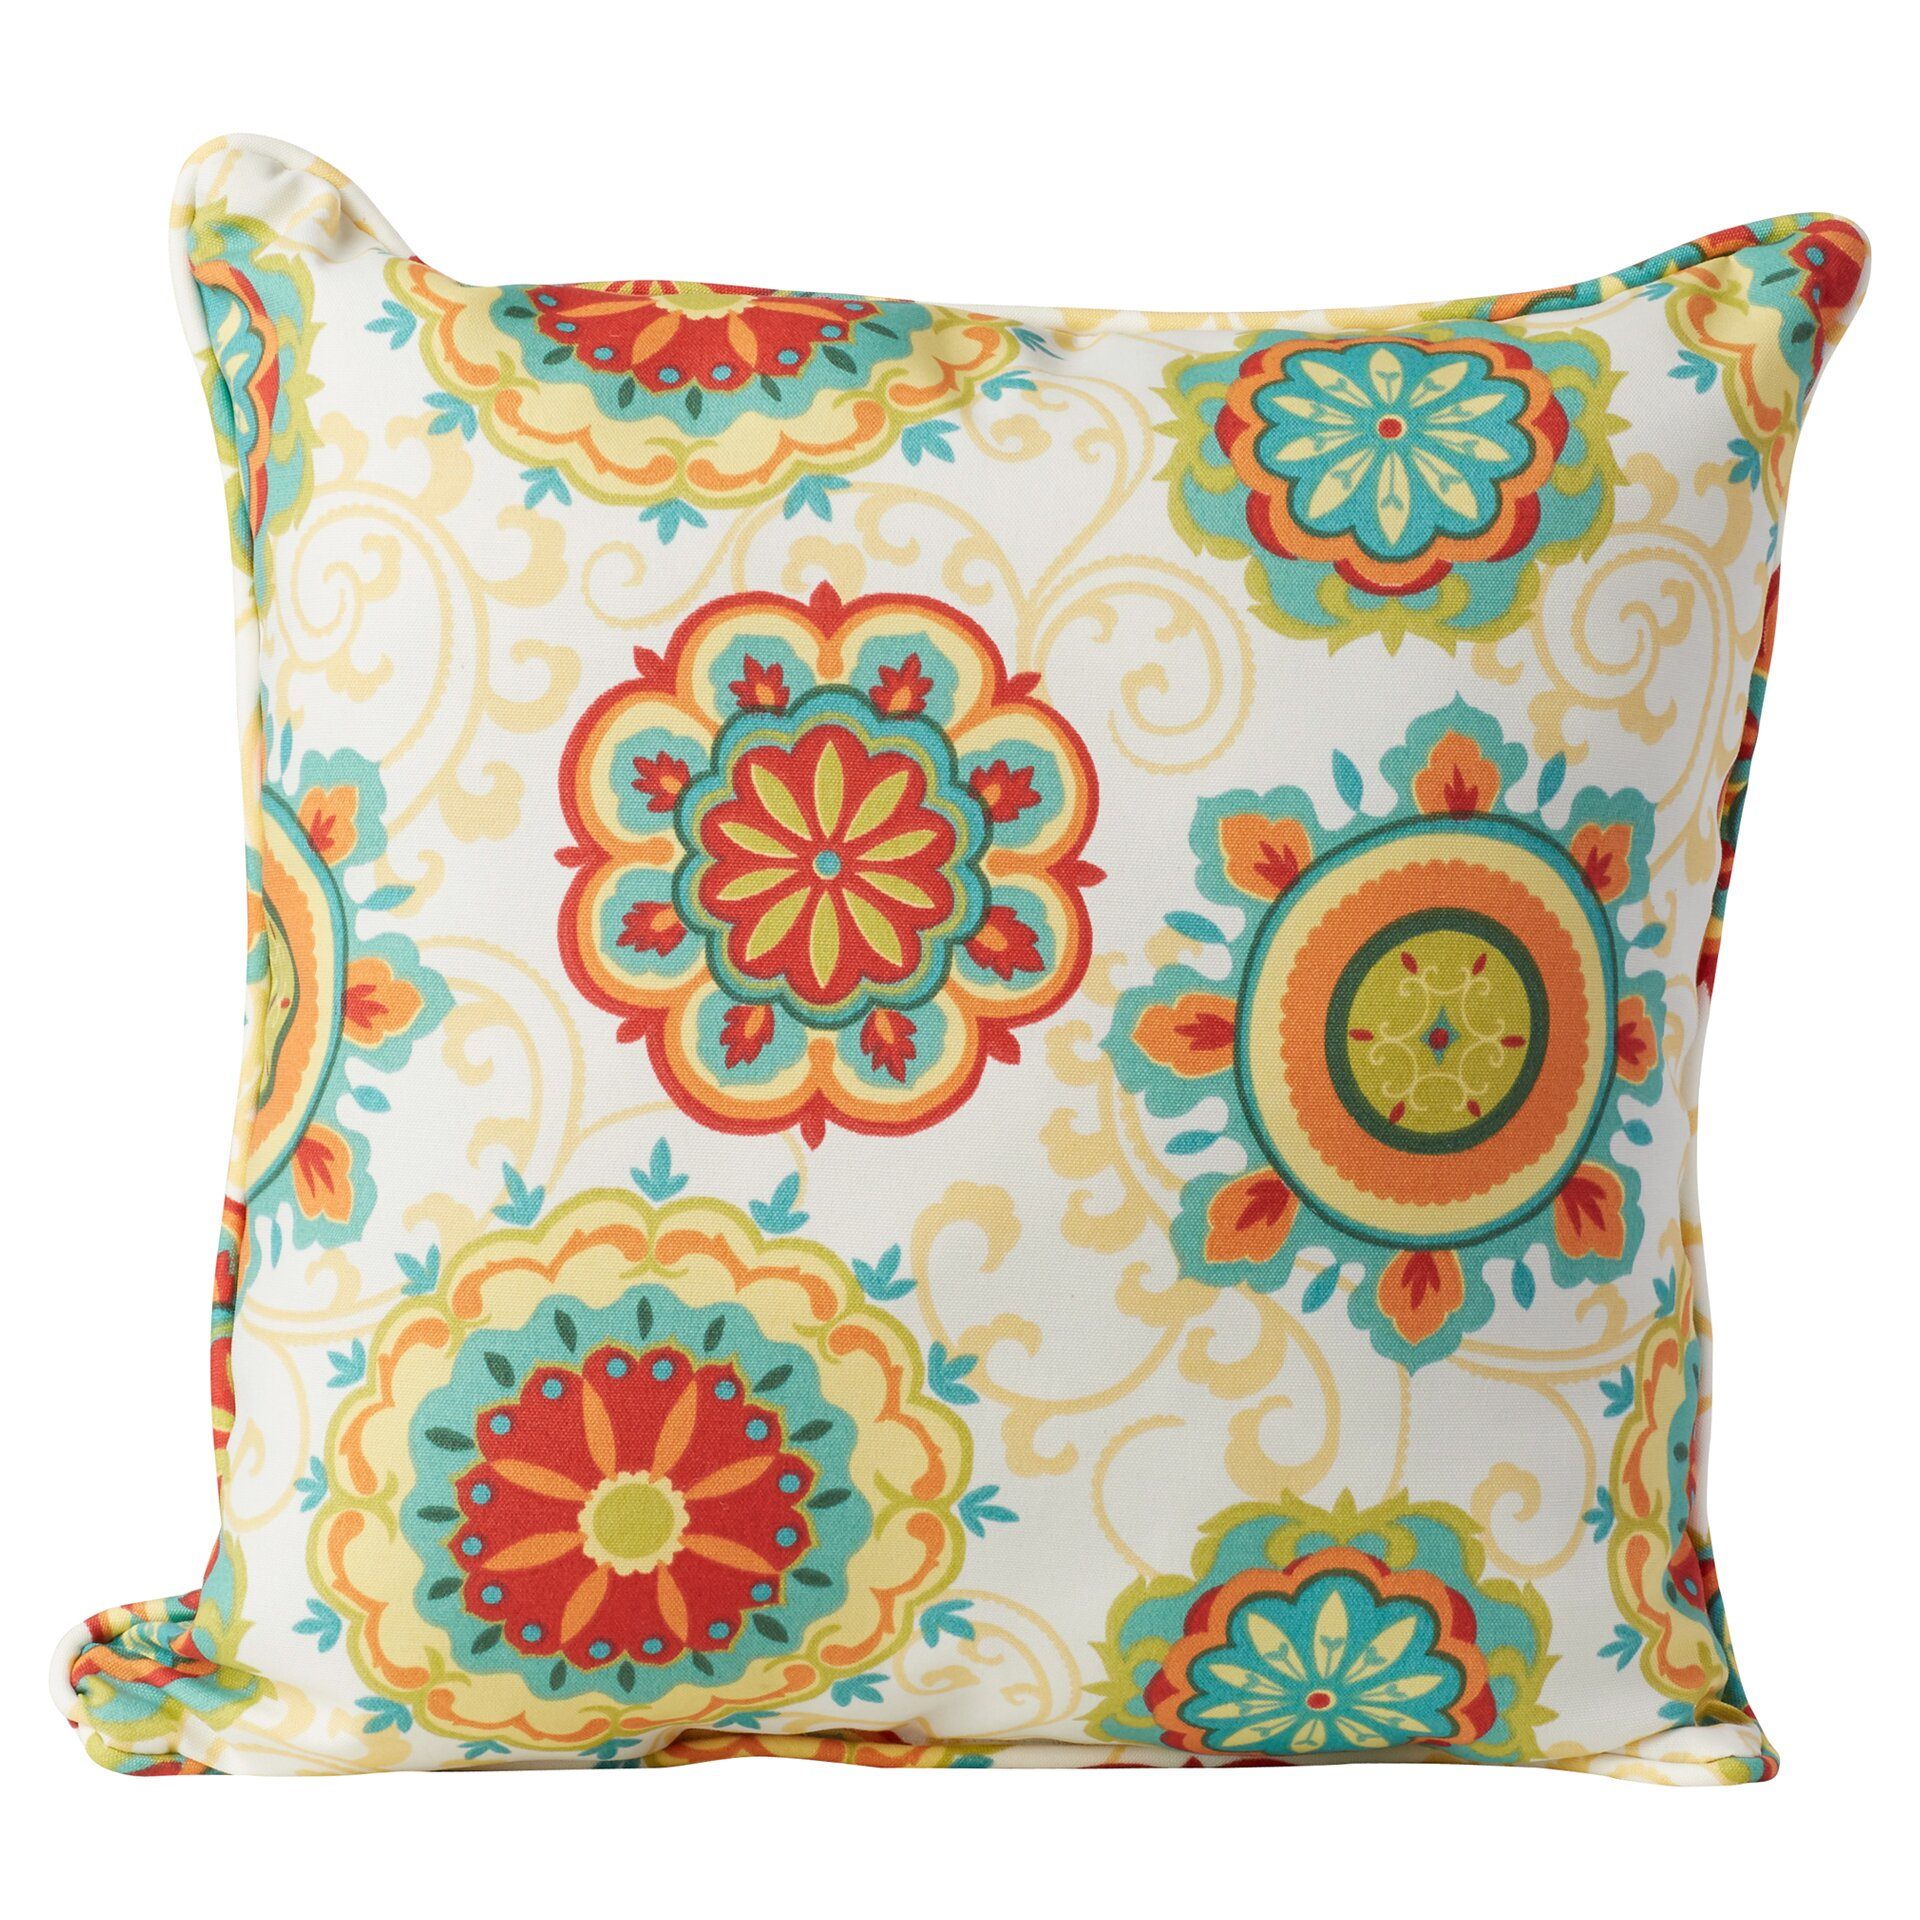 Throw Pillows In Abuja : Darby Home Co Joliet Indoor/Outdoor Throw Pillow & Reviews Wayfair